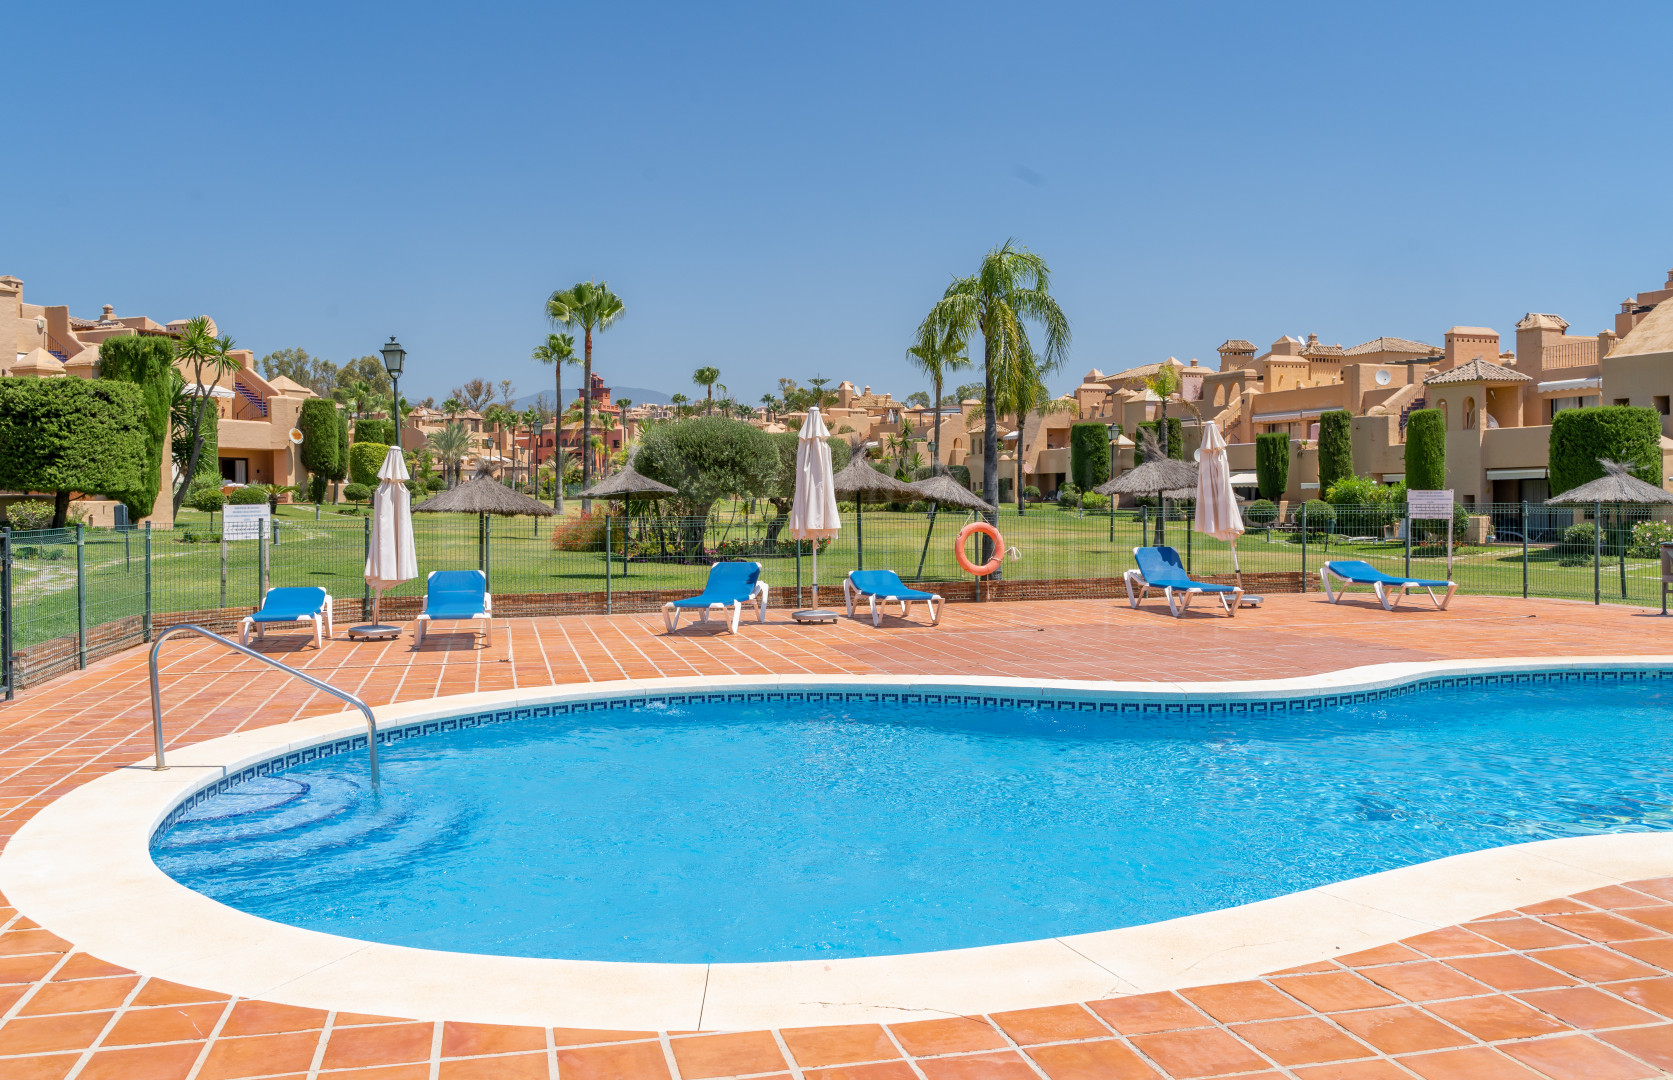 3-bedroom apartment with sunny and bright terrace in The First line of golf urbanization La Cartuja- Estepona